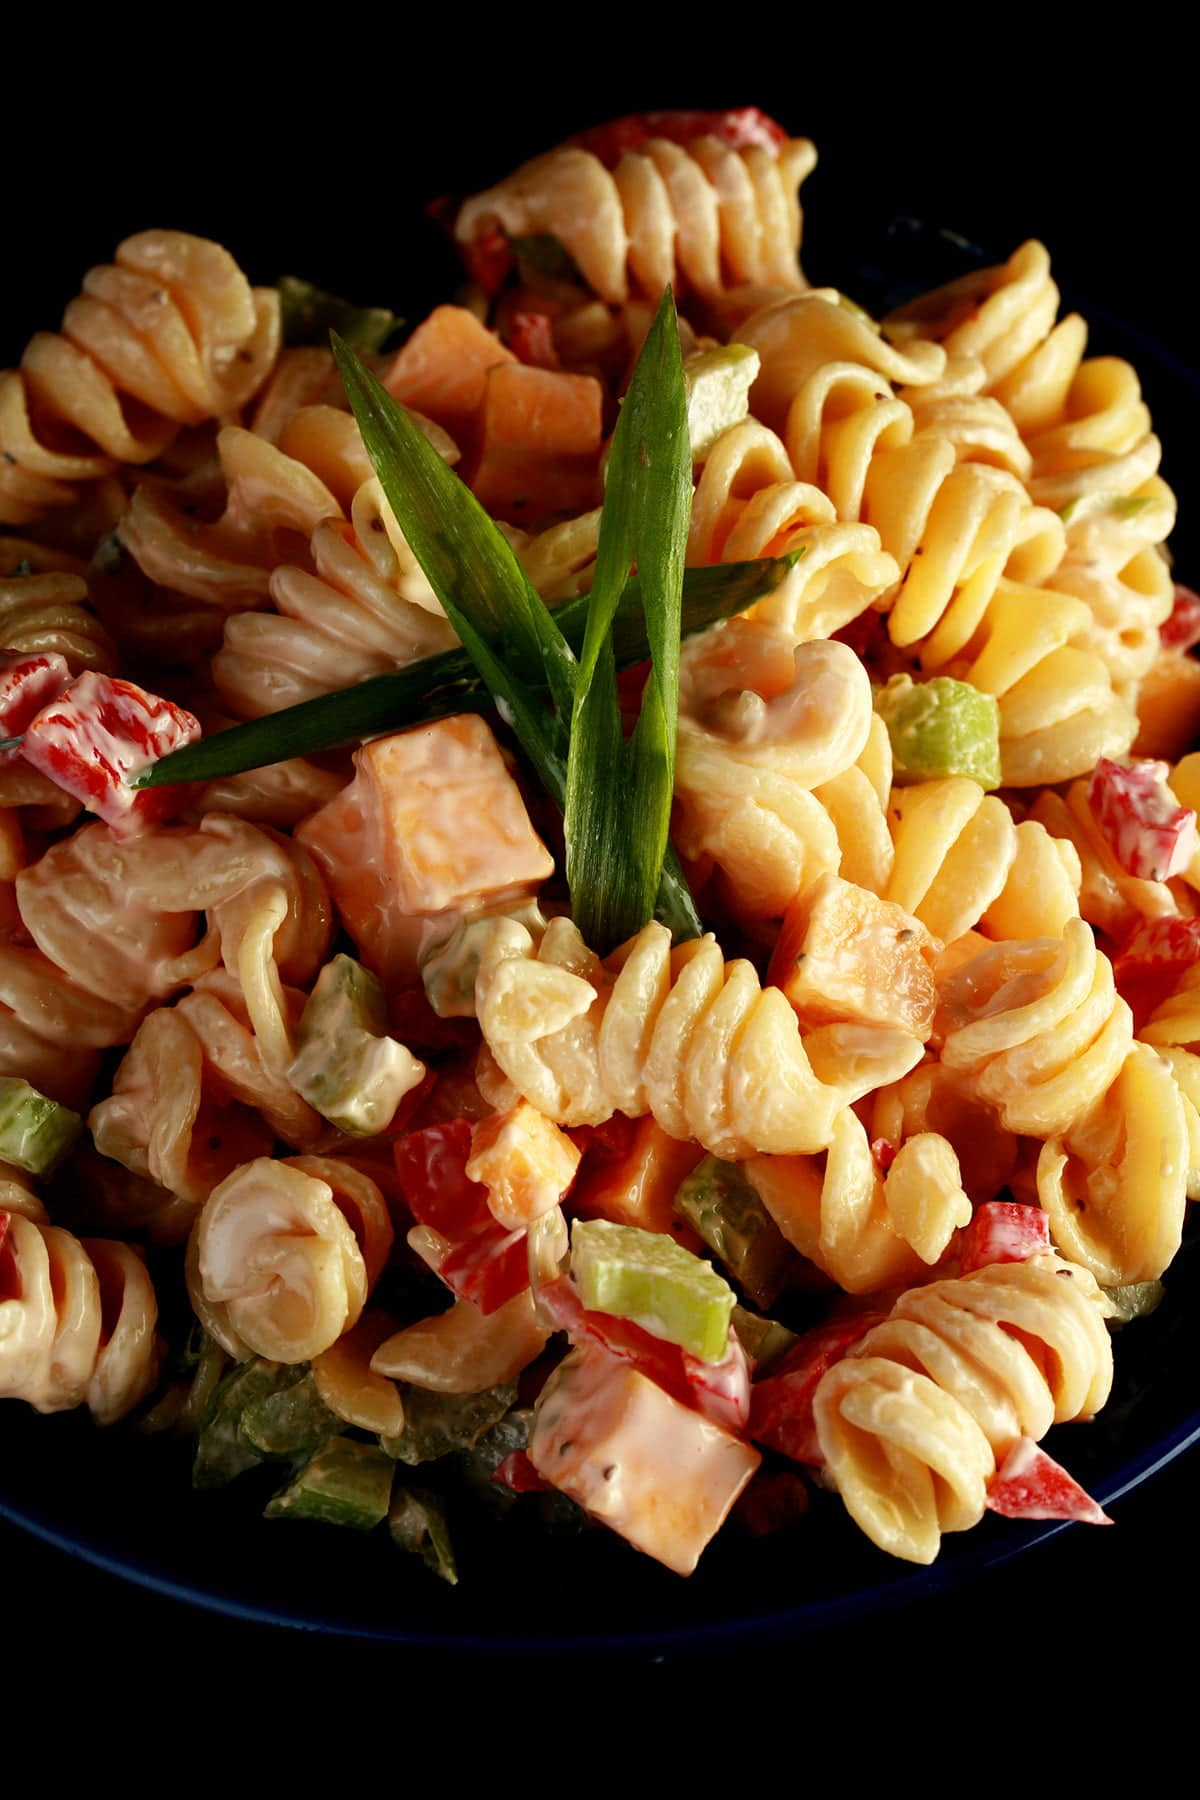 A blue bowl overflowing with a rotini based macaroni salad. Cubes of cheese, red peppers, celery slices, and green onion are all visible.